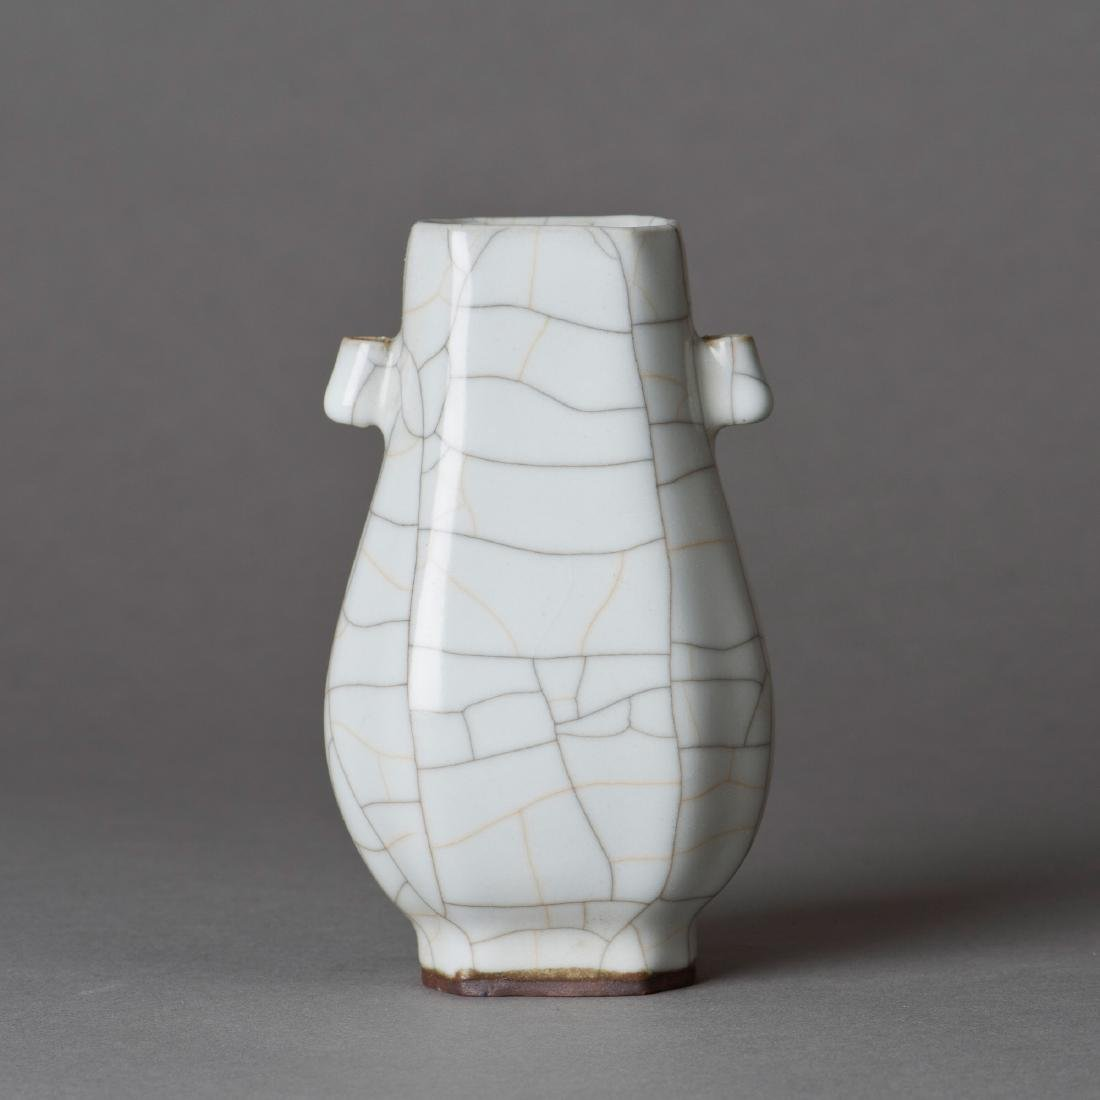 A CRACKLE-GLAZED PORCELAIN VASE